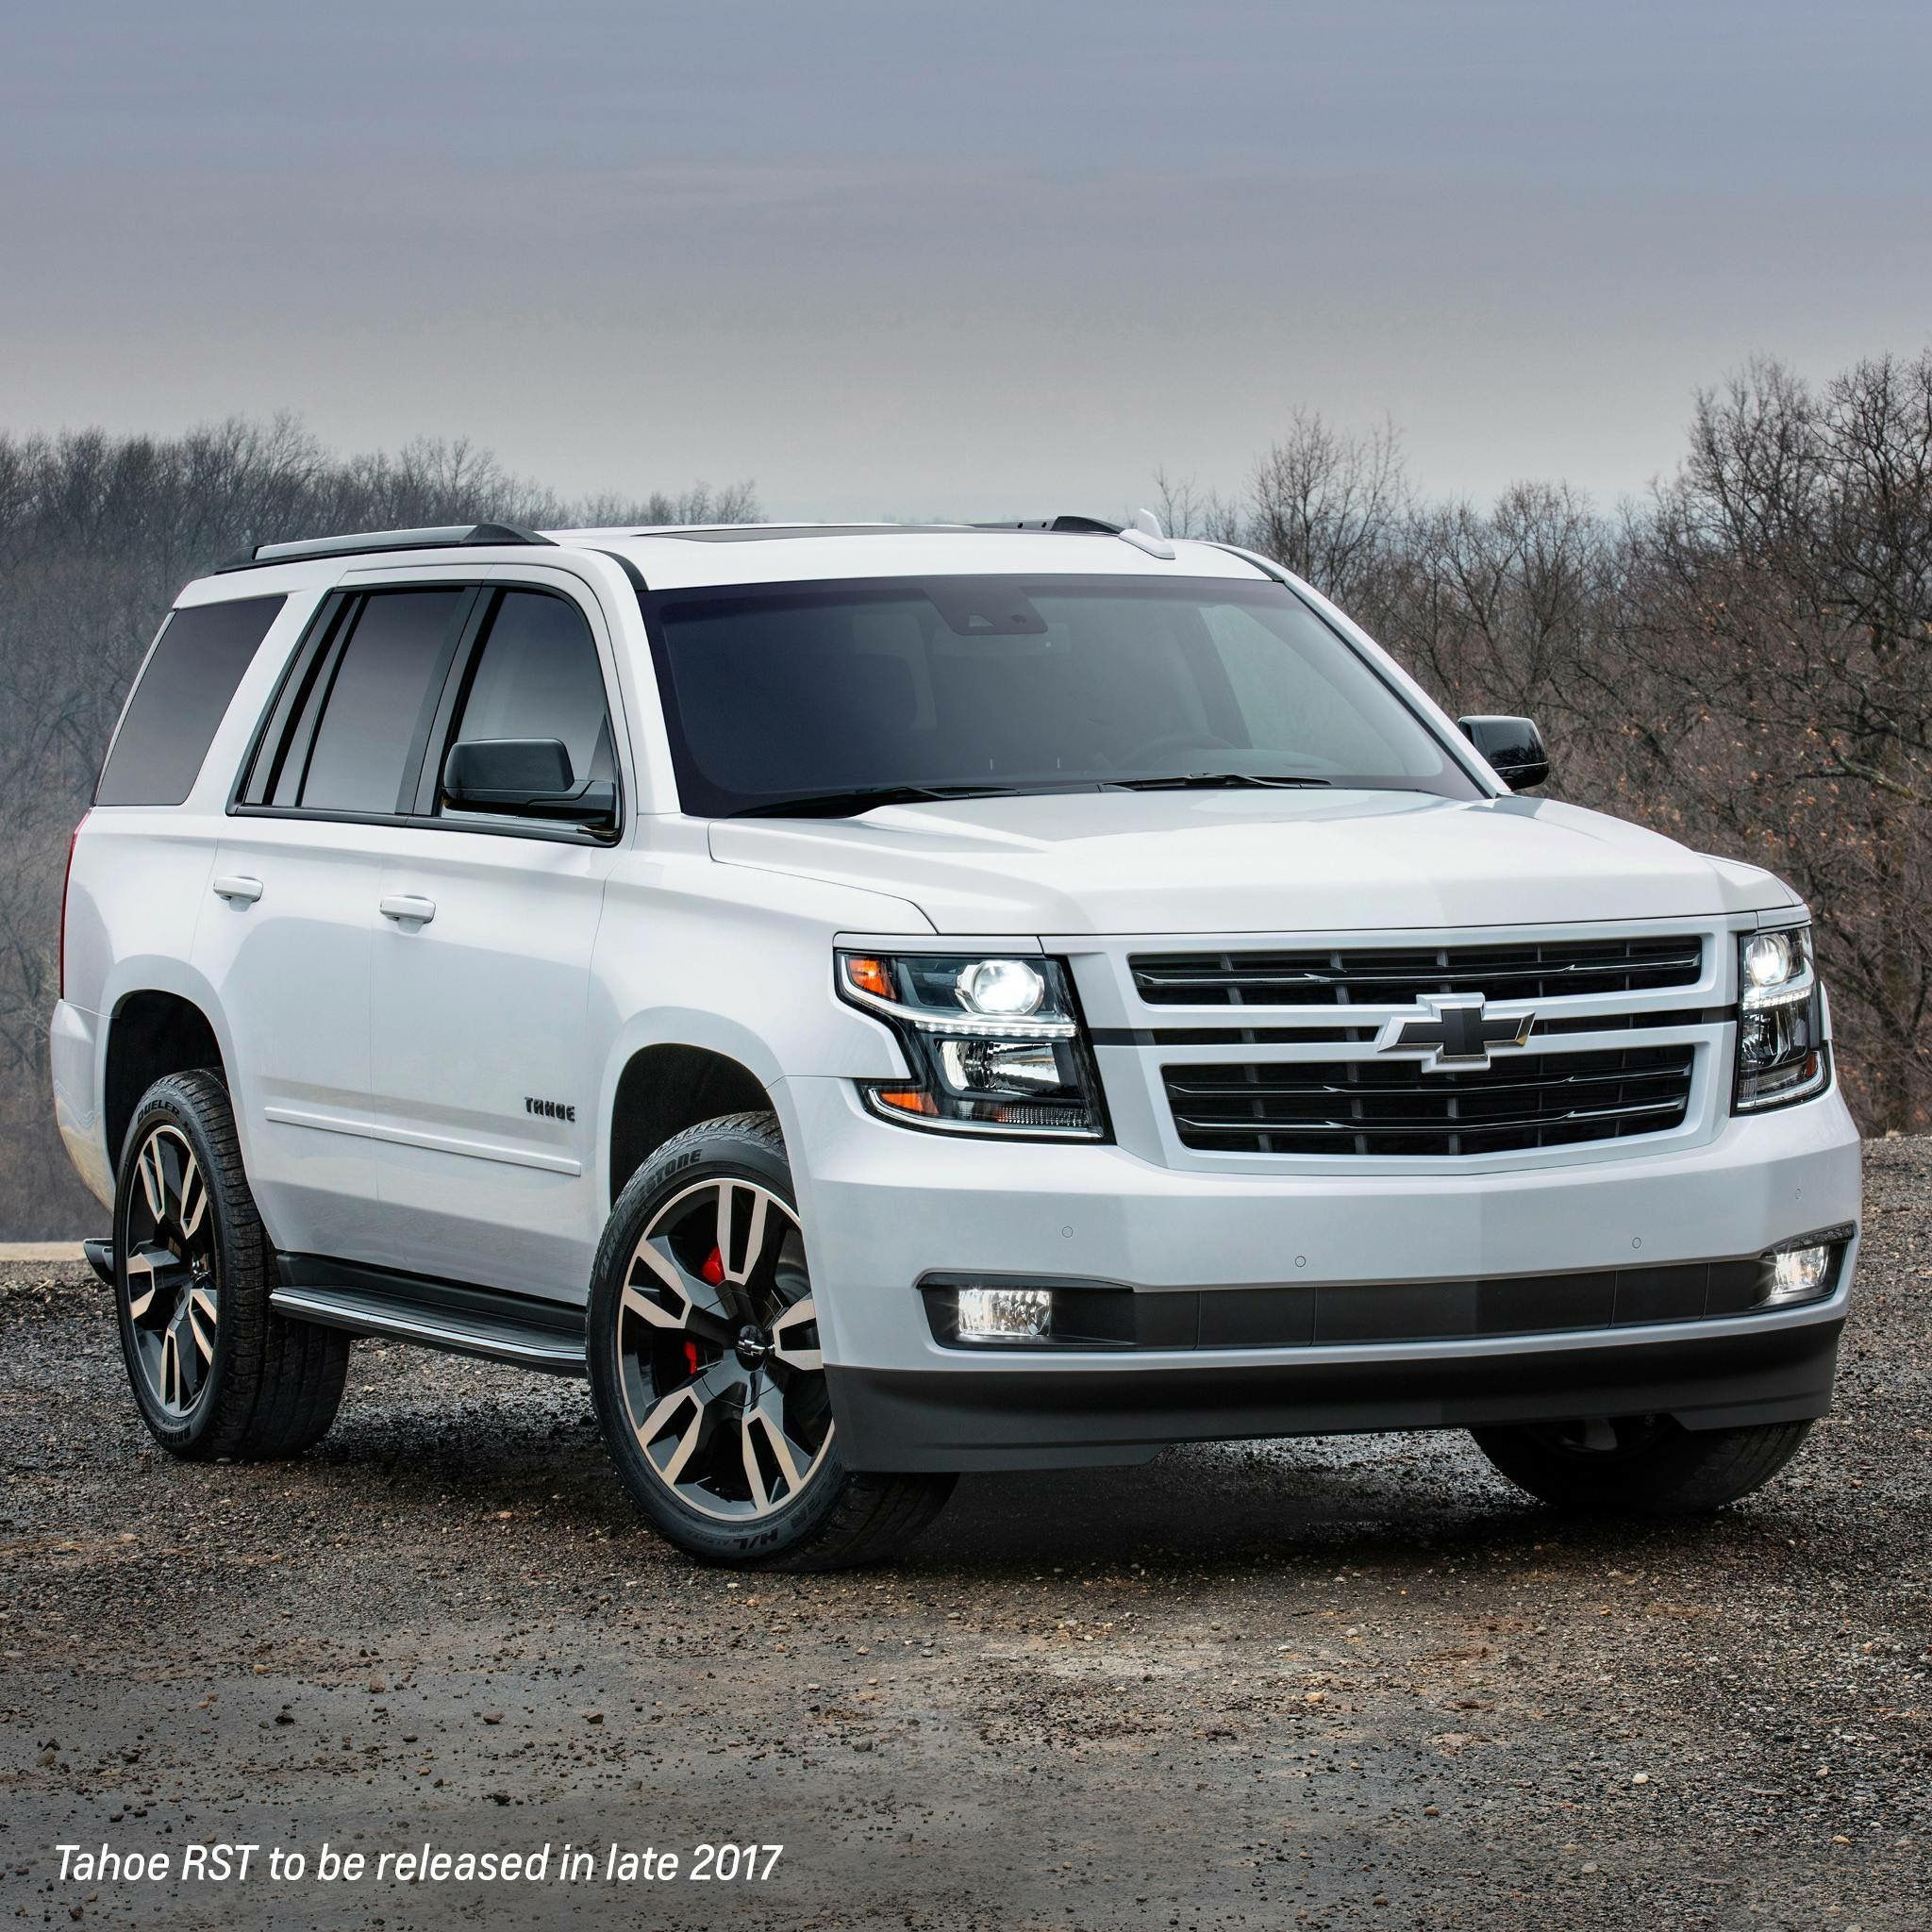 Pin By Mackenzie Yates On Future Suv In 2020 With Images Chevrolet Tahoe Chevy Tahoe Chevy